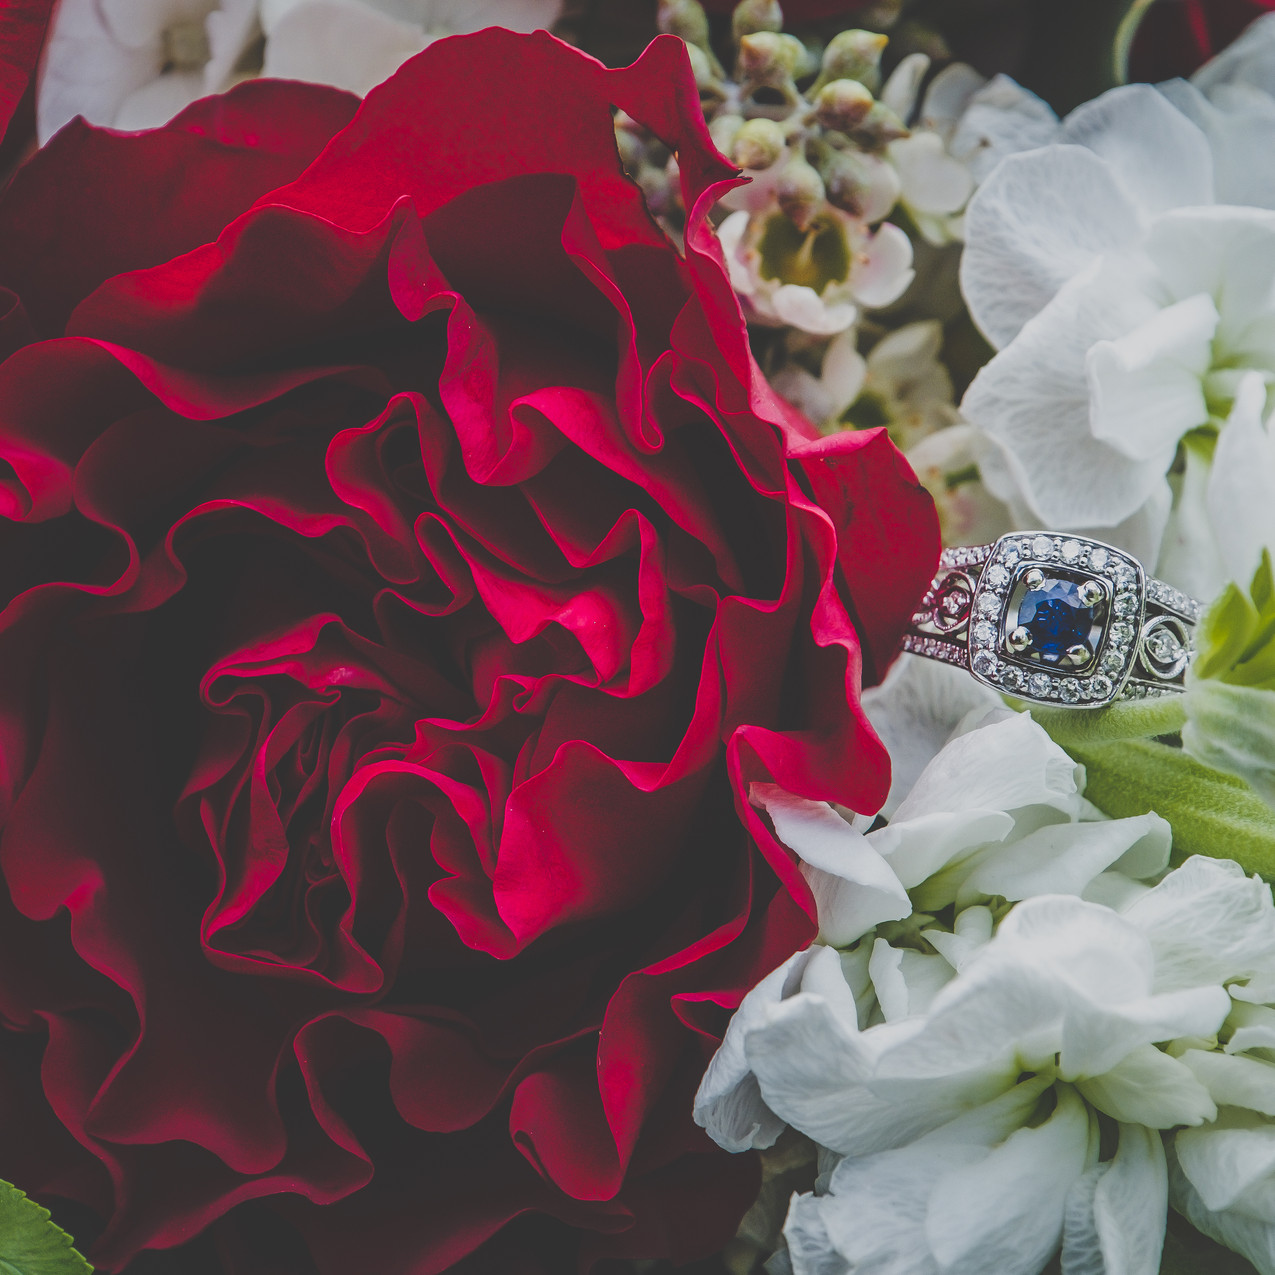 Wedding Ring in Bouquet by Just Judy's